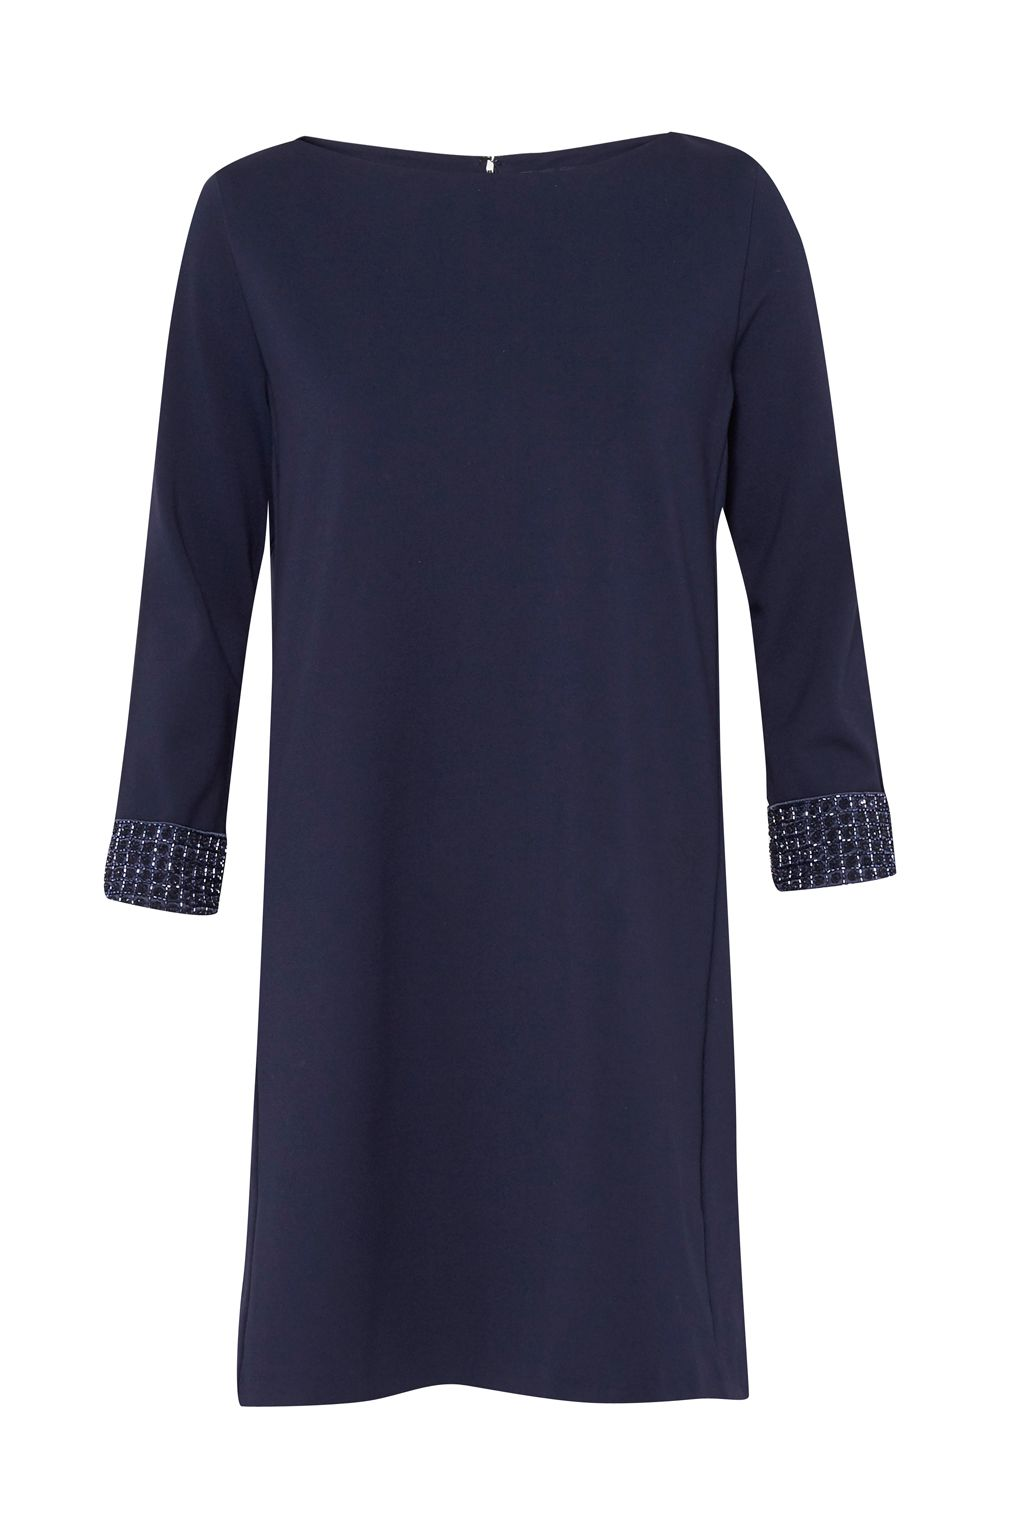 French Connection Crystal Shot Embellished Tunic Dress, Nocturnal